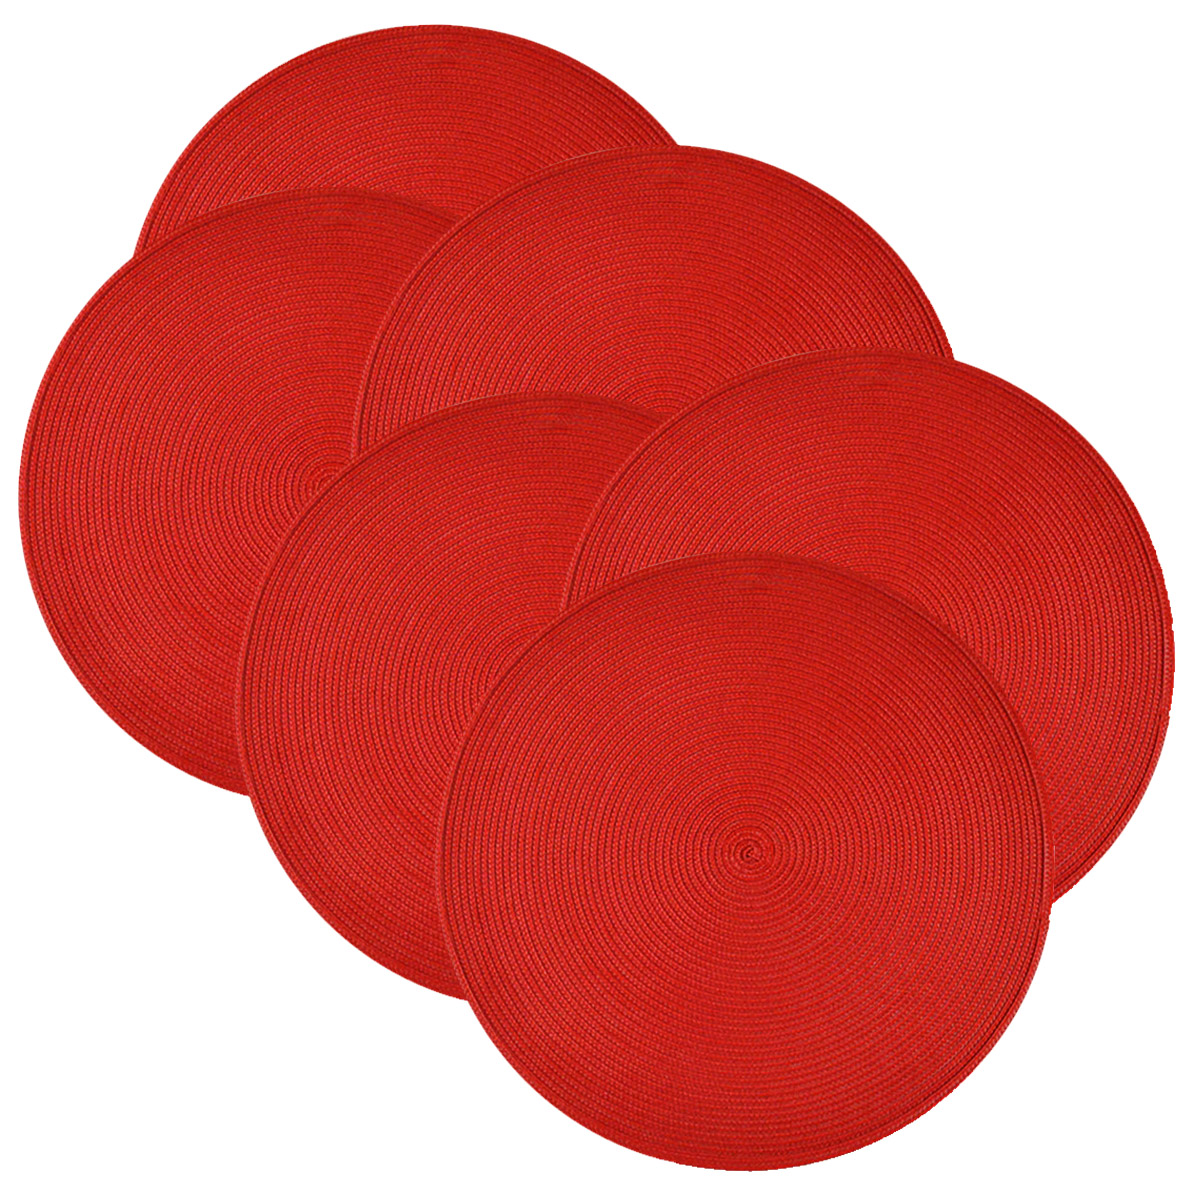 Design Imports Red Indoor/Outdoor Placemat Set of 6